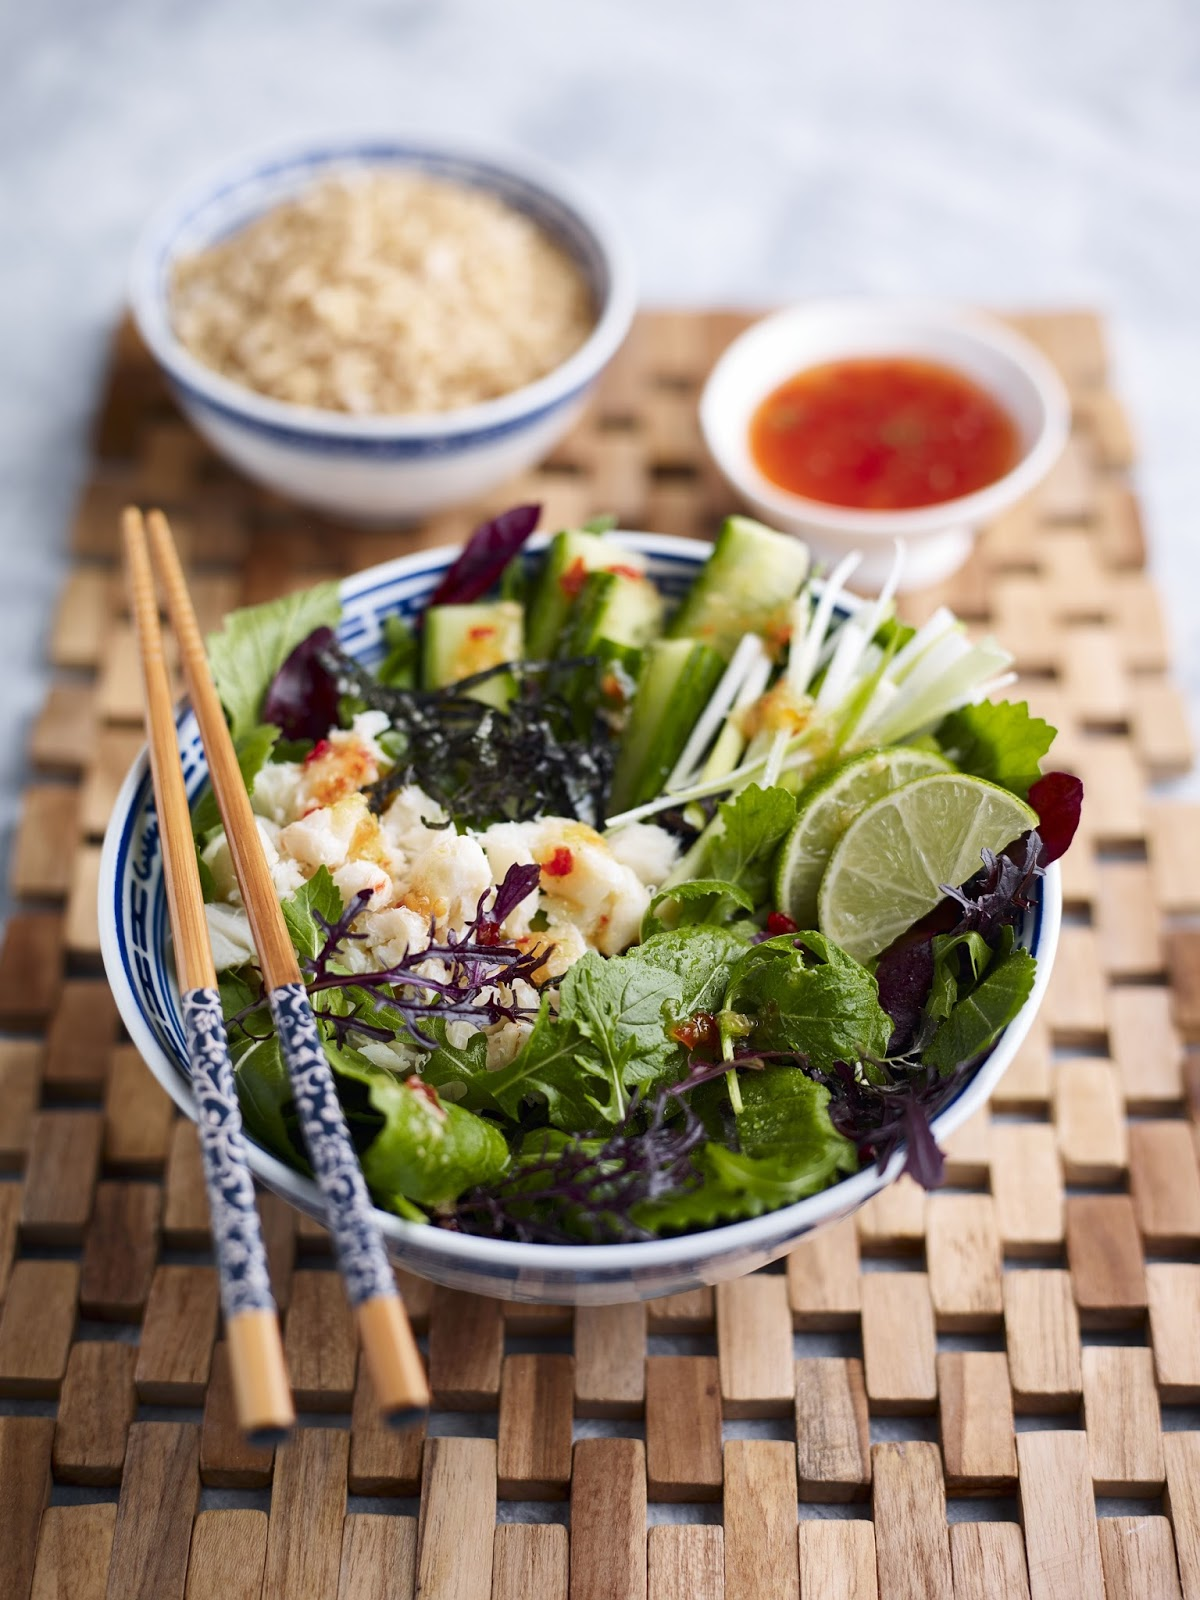 How To Make Sushi Salad Bowl